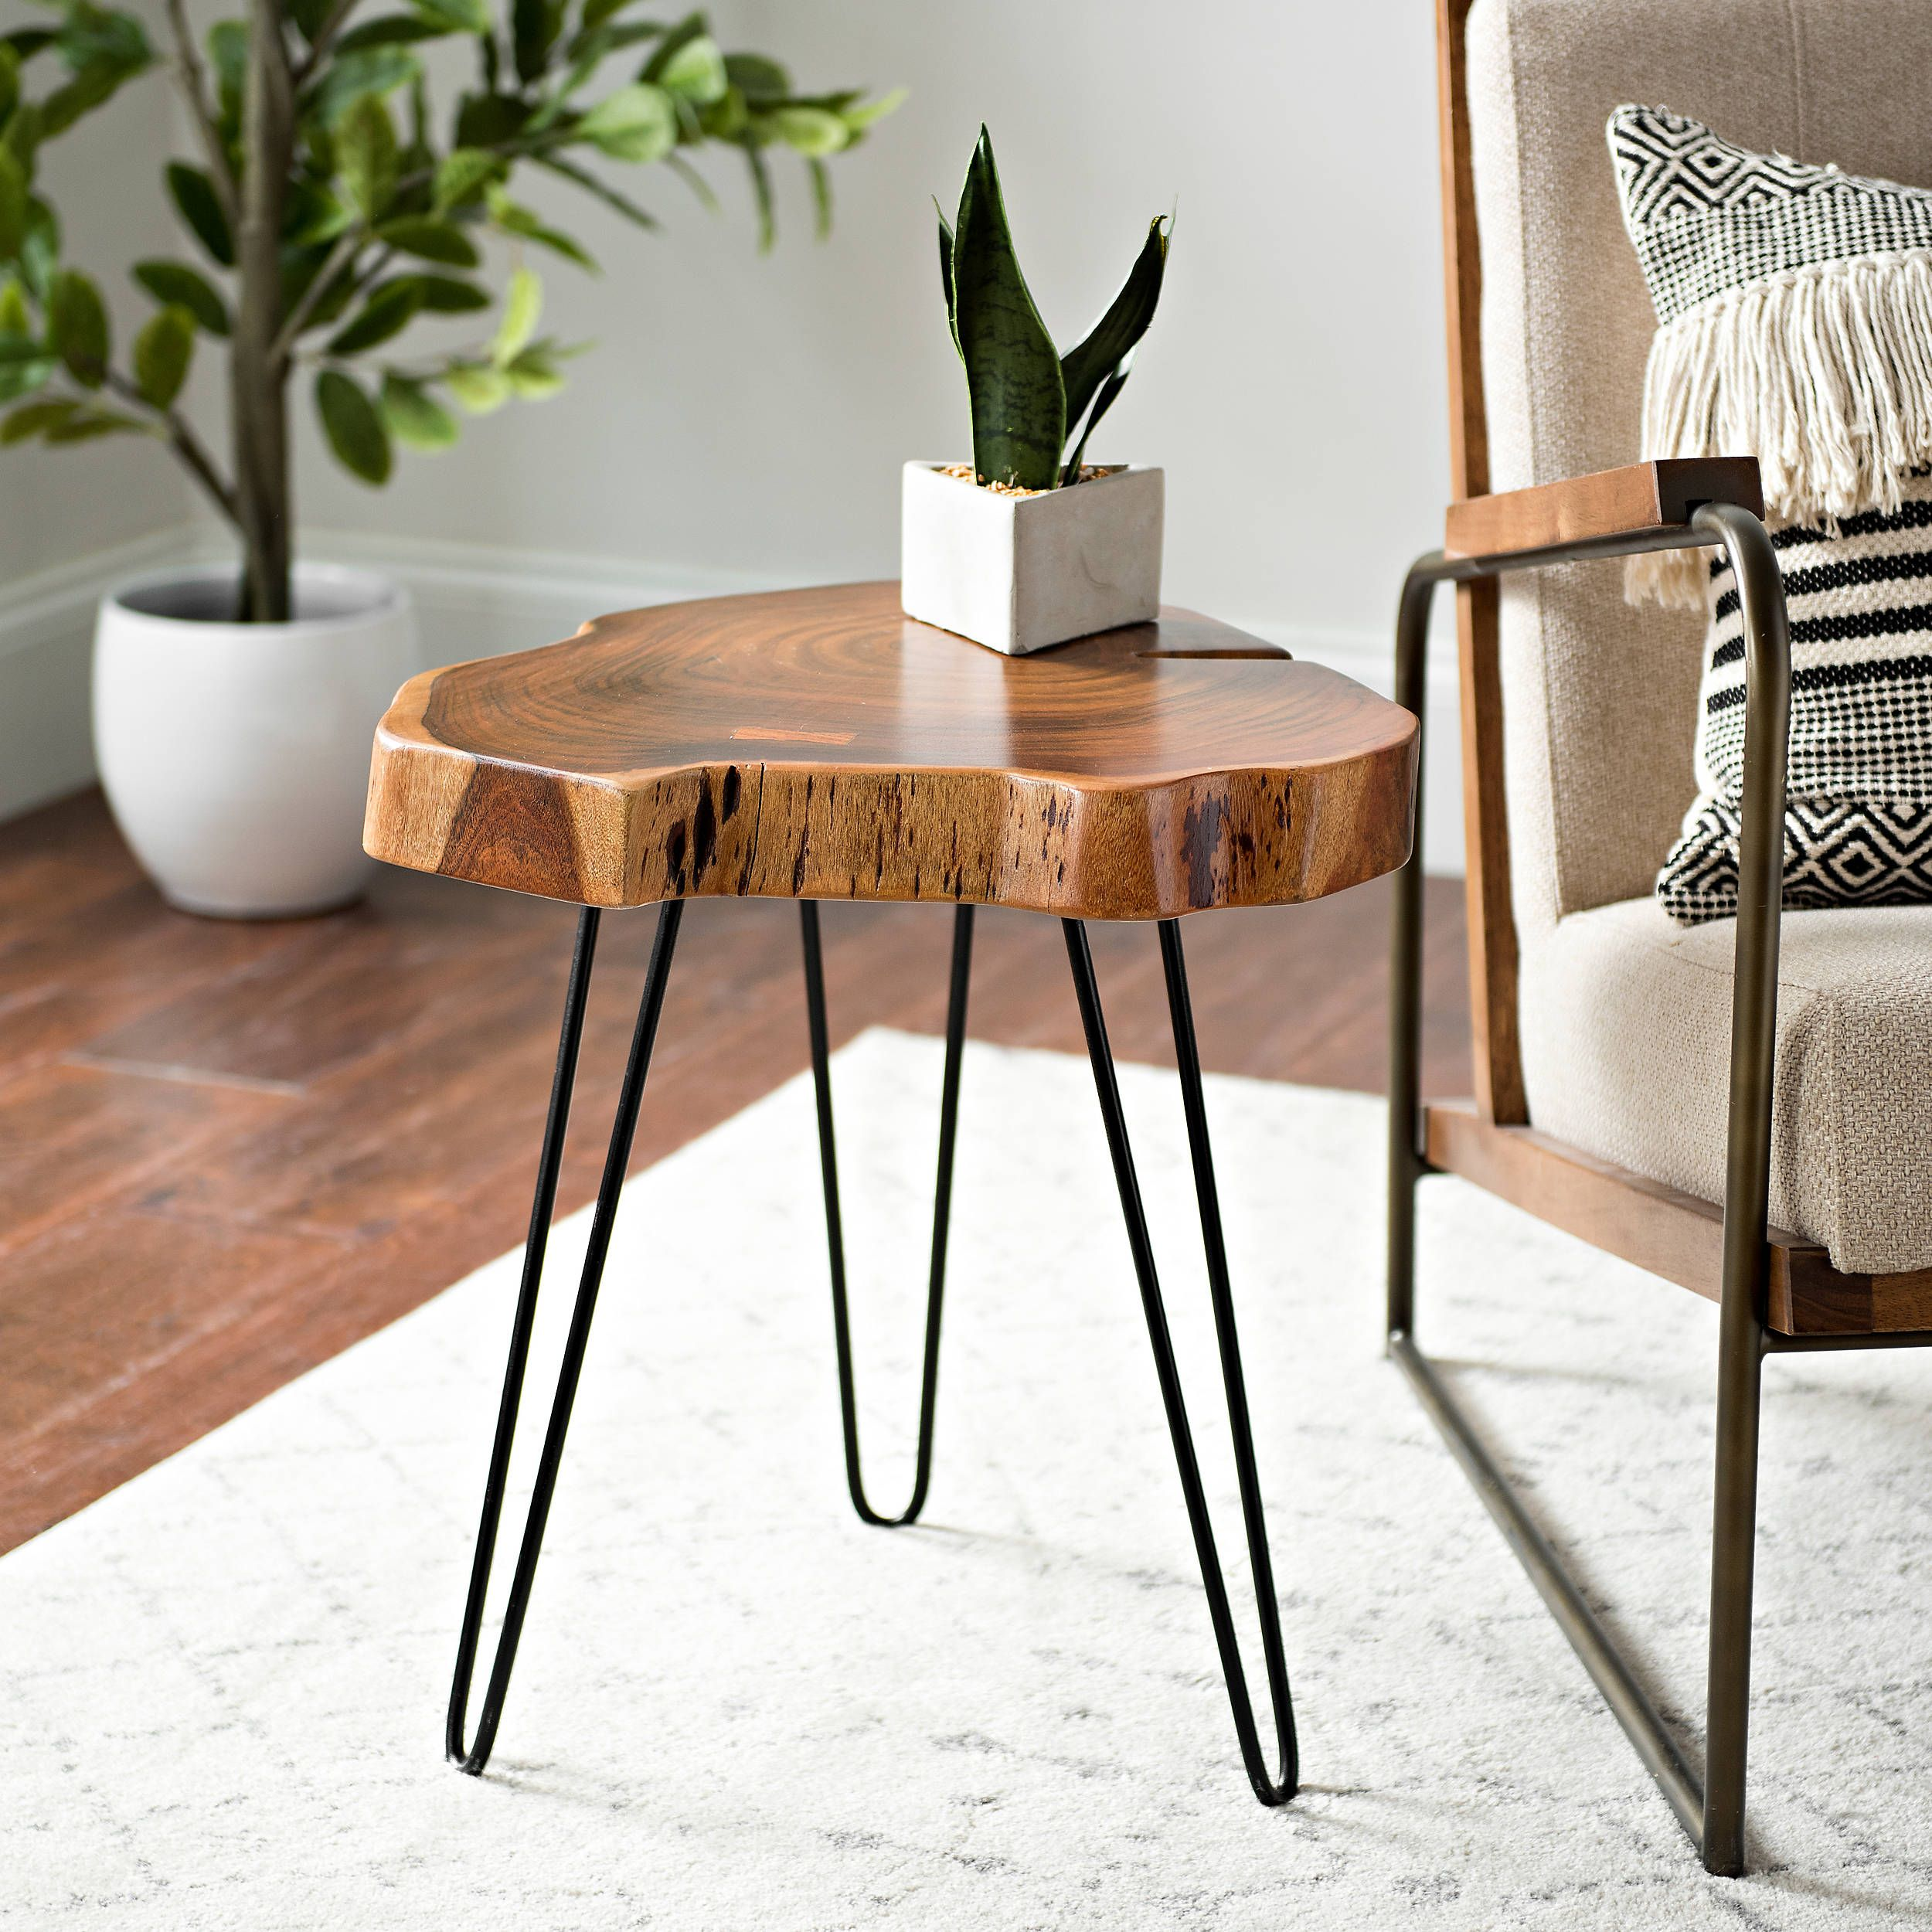 This Is How To Nail Sophisticated Boho Vibes In Your Living Room Hunker Side Table Decor Side Table Wood Table Decor Living Room [ 2500 x 2500 Pixel ]